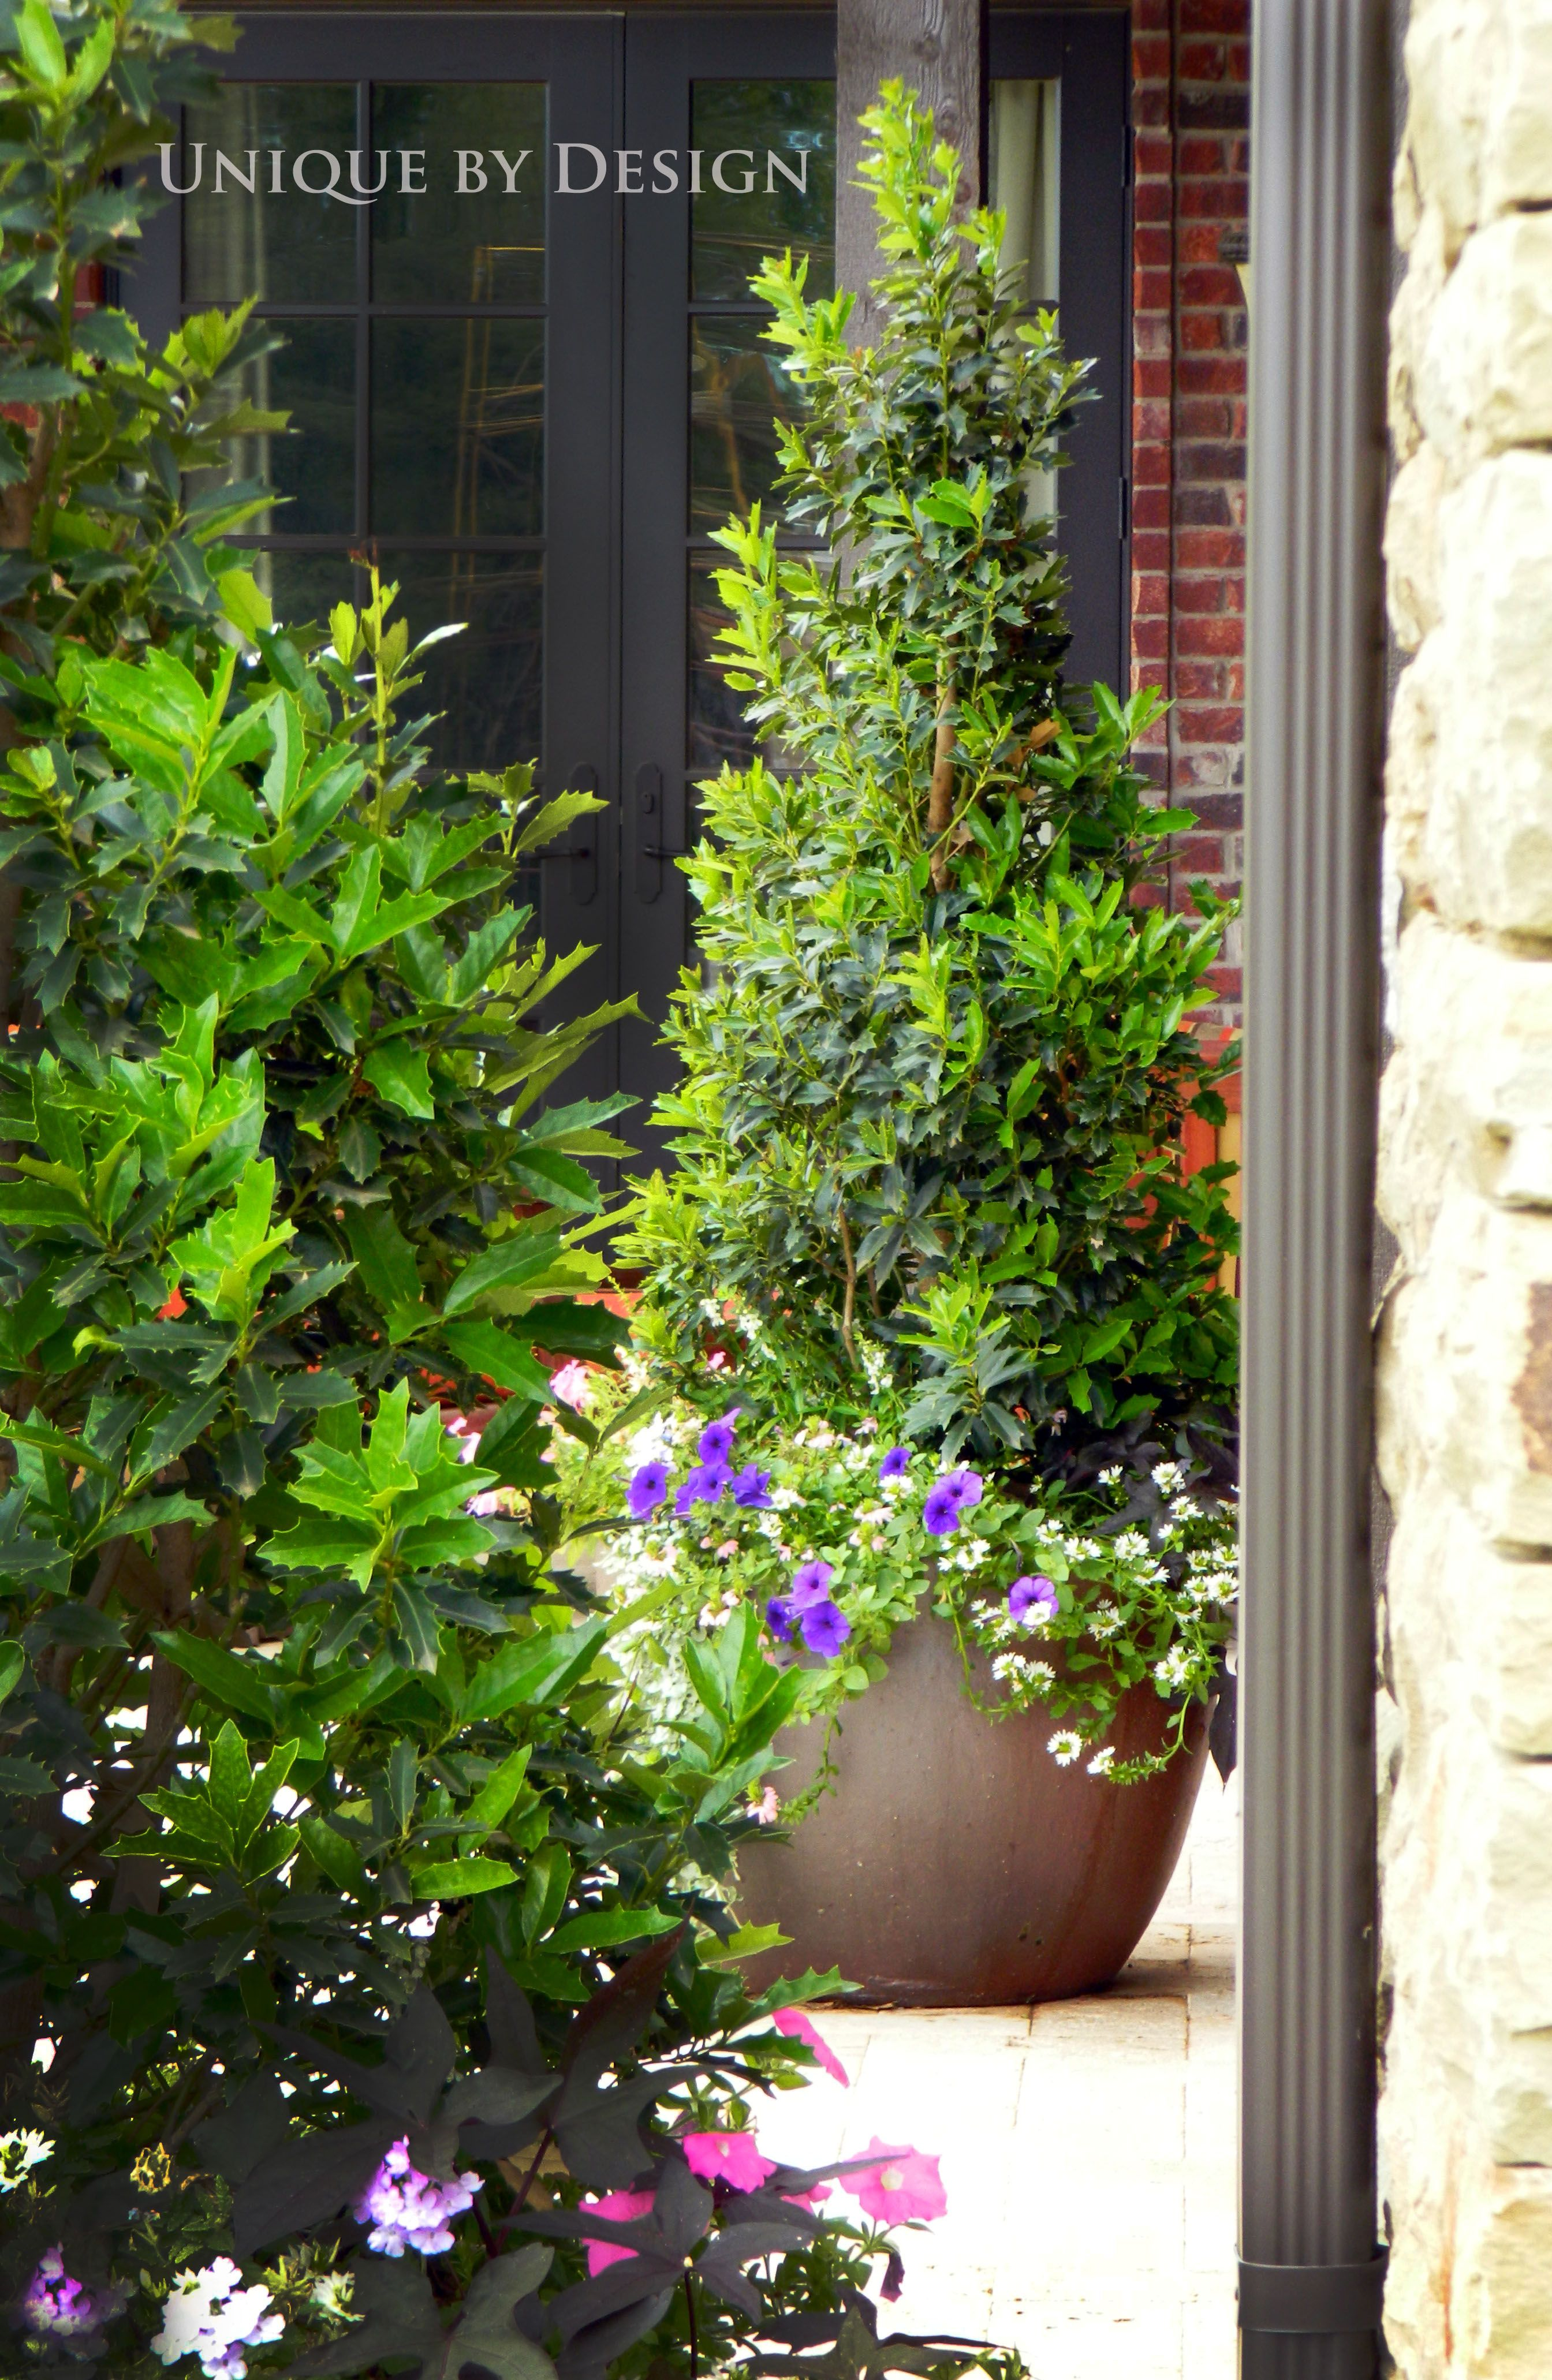 Tall, skinny and pointed shrubs in planter pots left and